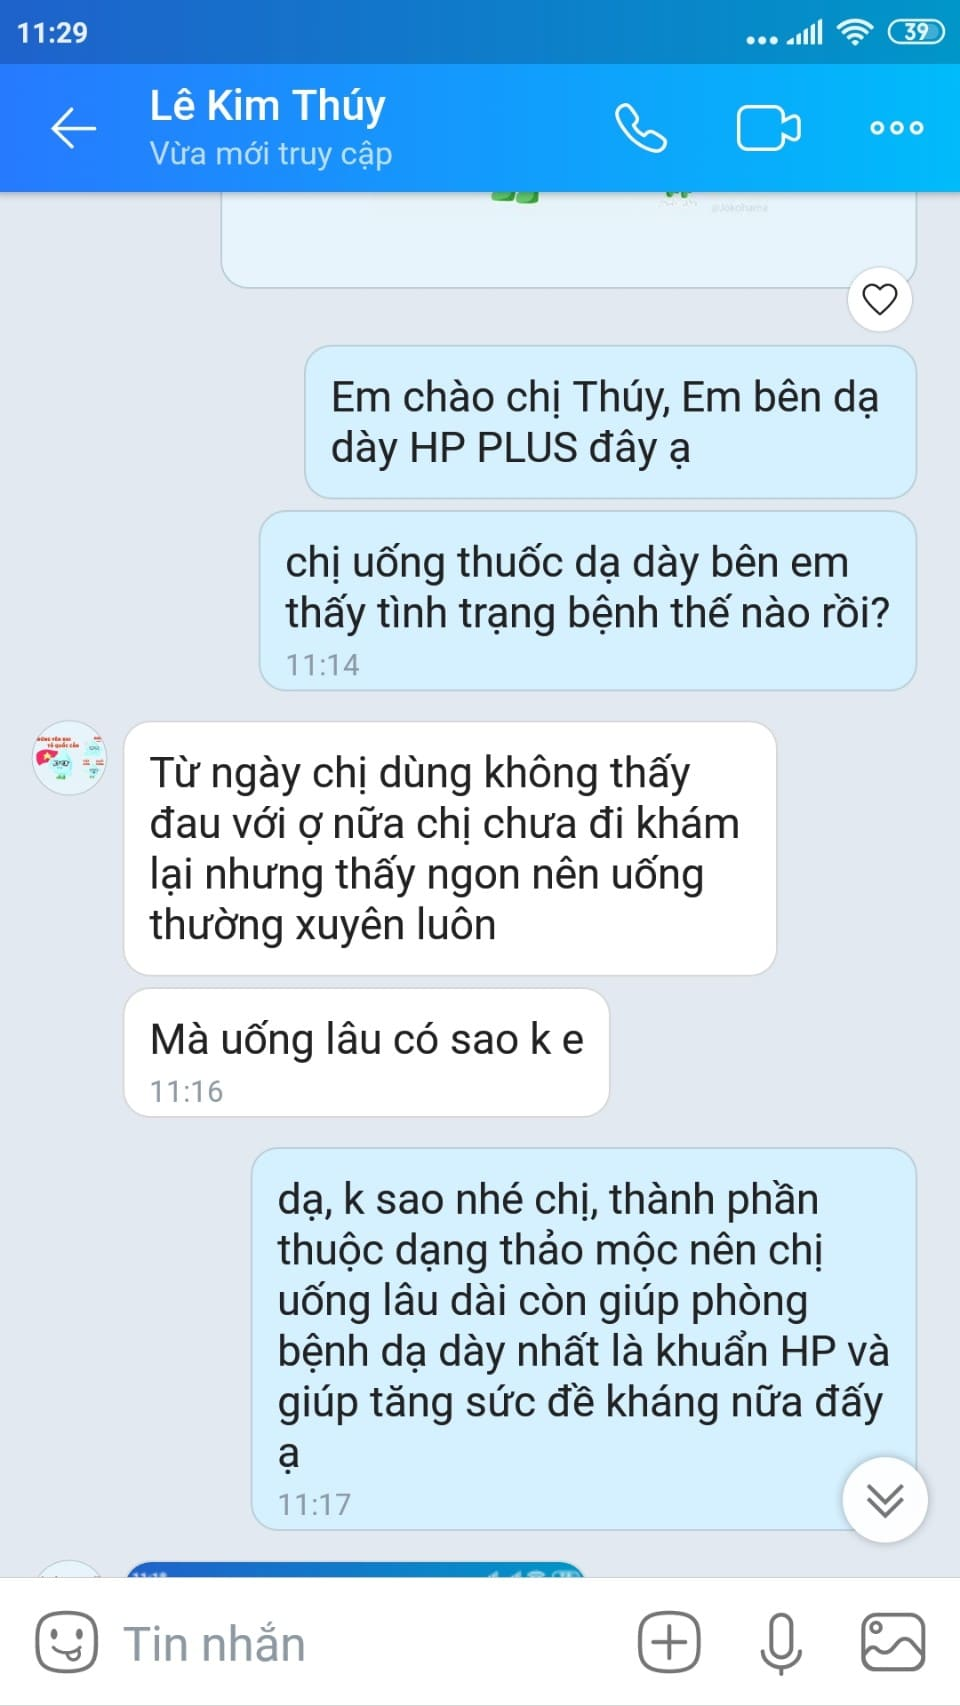 le kim thuy su dung da day hp plus